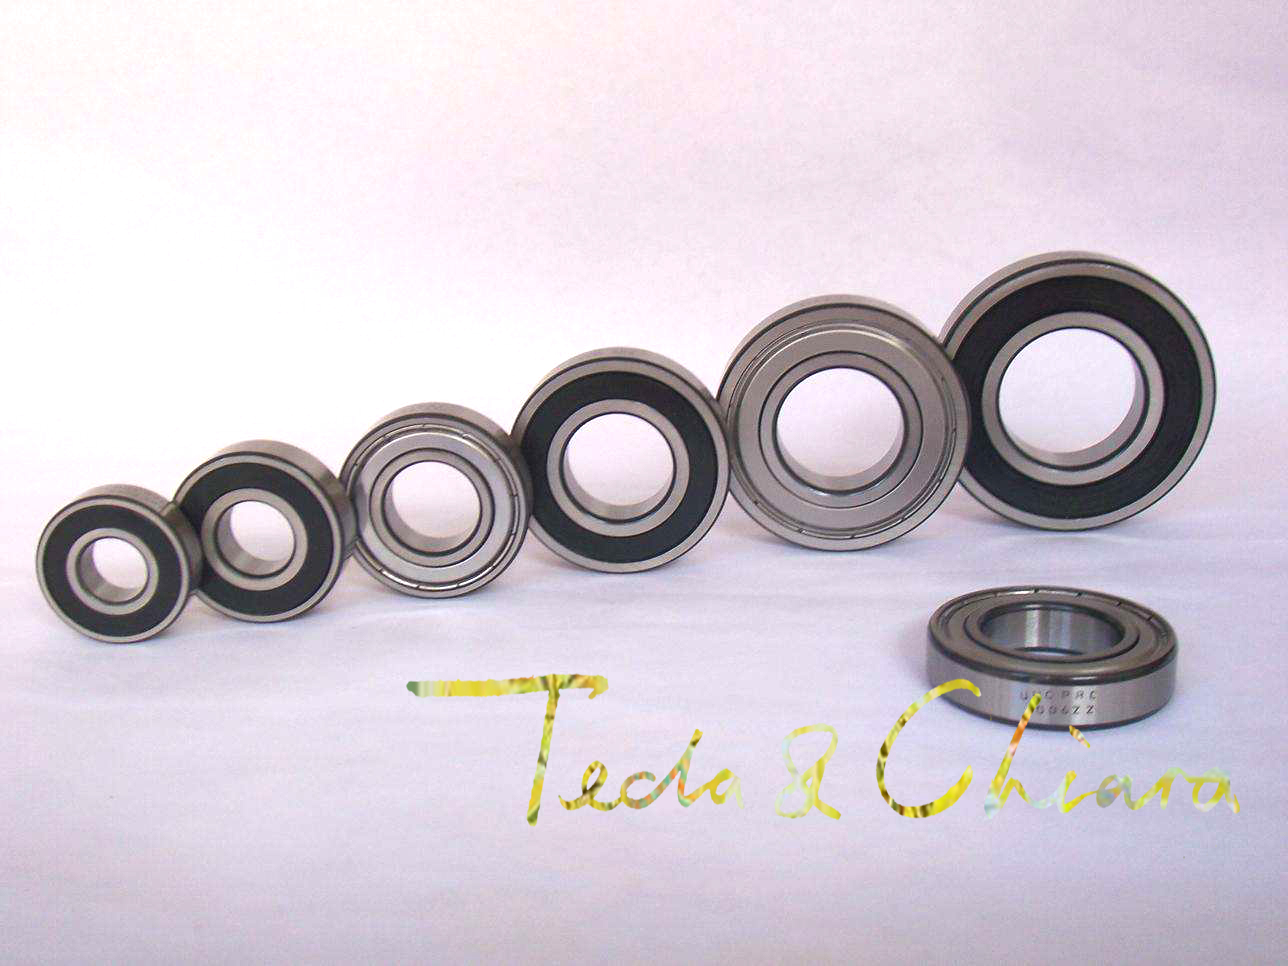 10Pcs 6702 <font><b>6702ZZ</b></font> 6702RS 6702-2Z 6702Z 6702-2RS ZZ RS RZ 2RZ Deep Groove Ball Bearings 15 x 21 x 4mm High Quality image